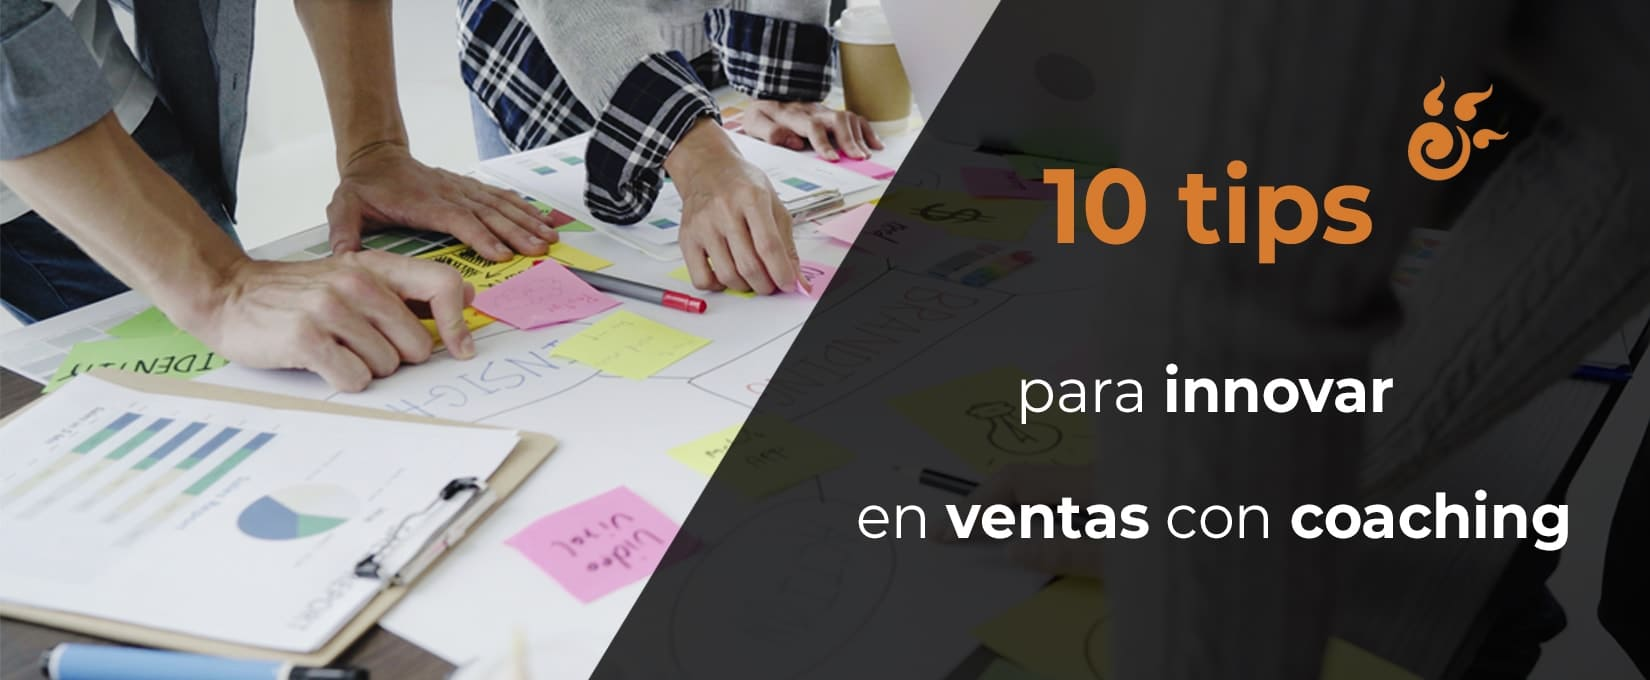 10-tips-para-innovar-en-ventas-con-coaching